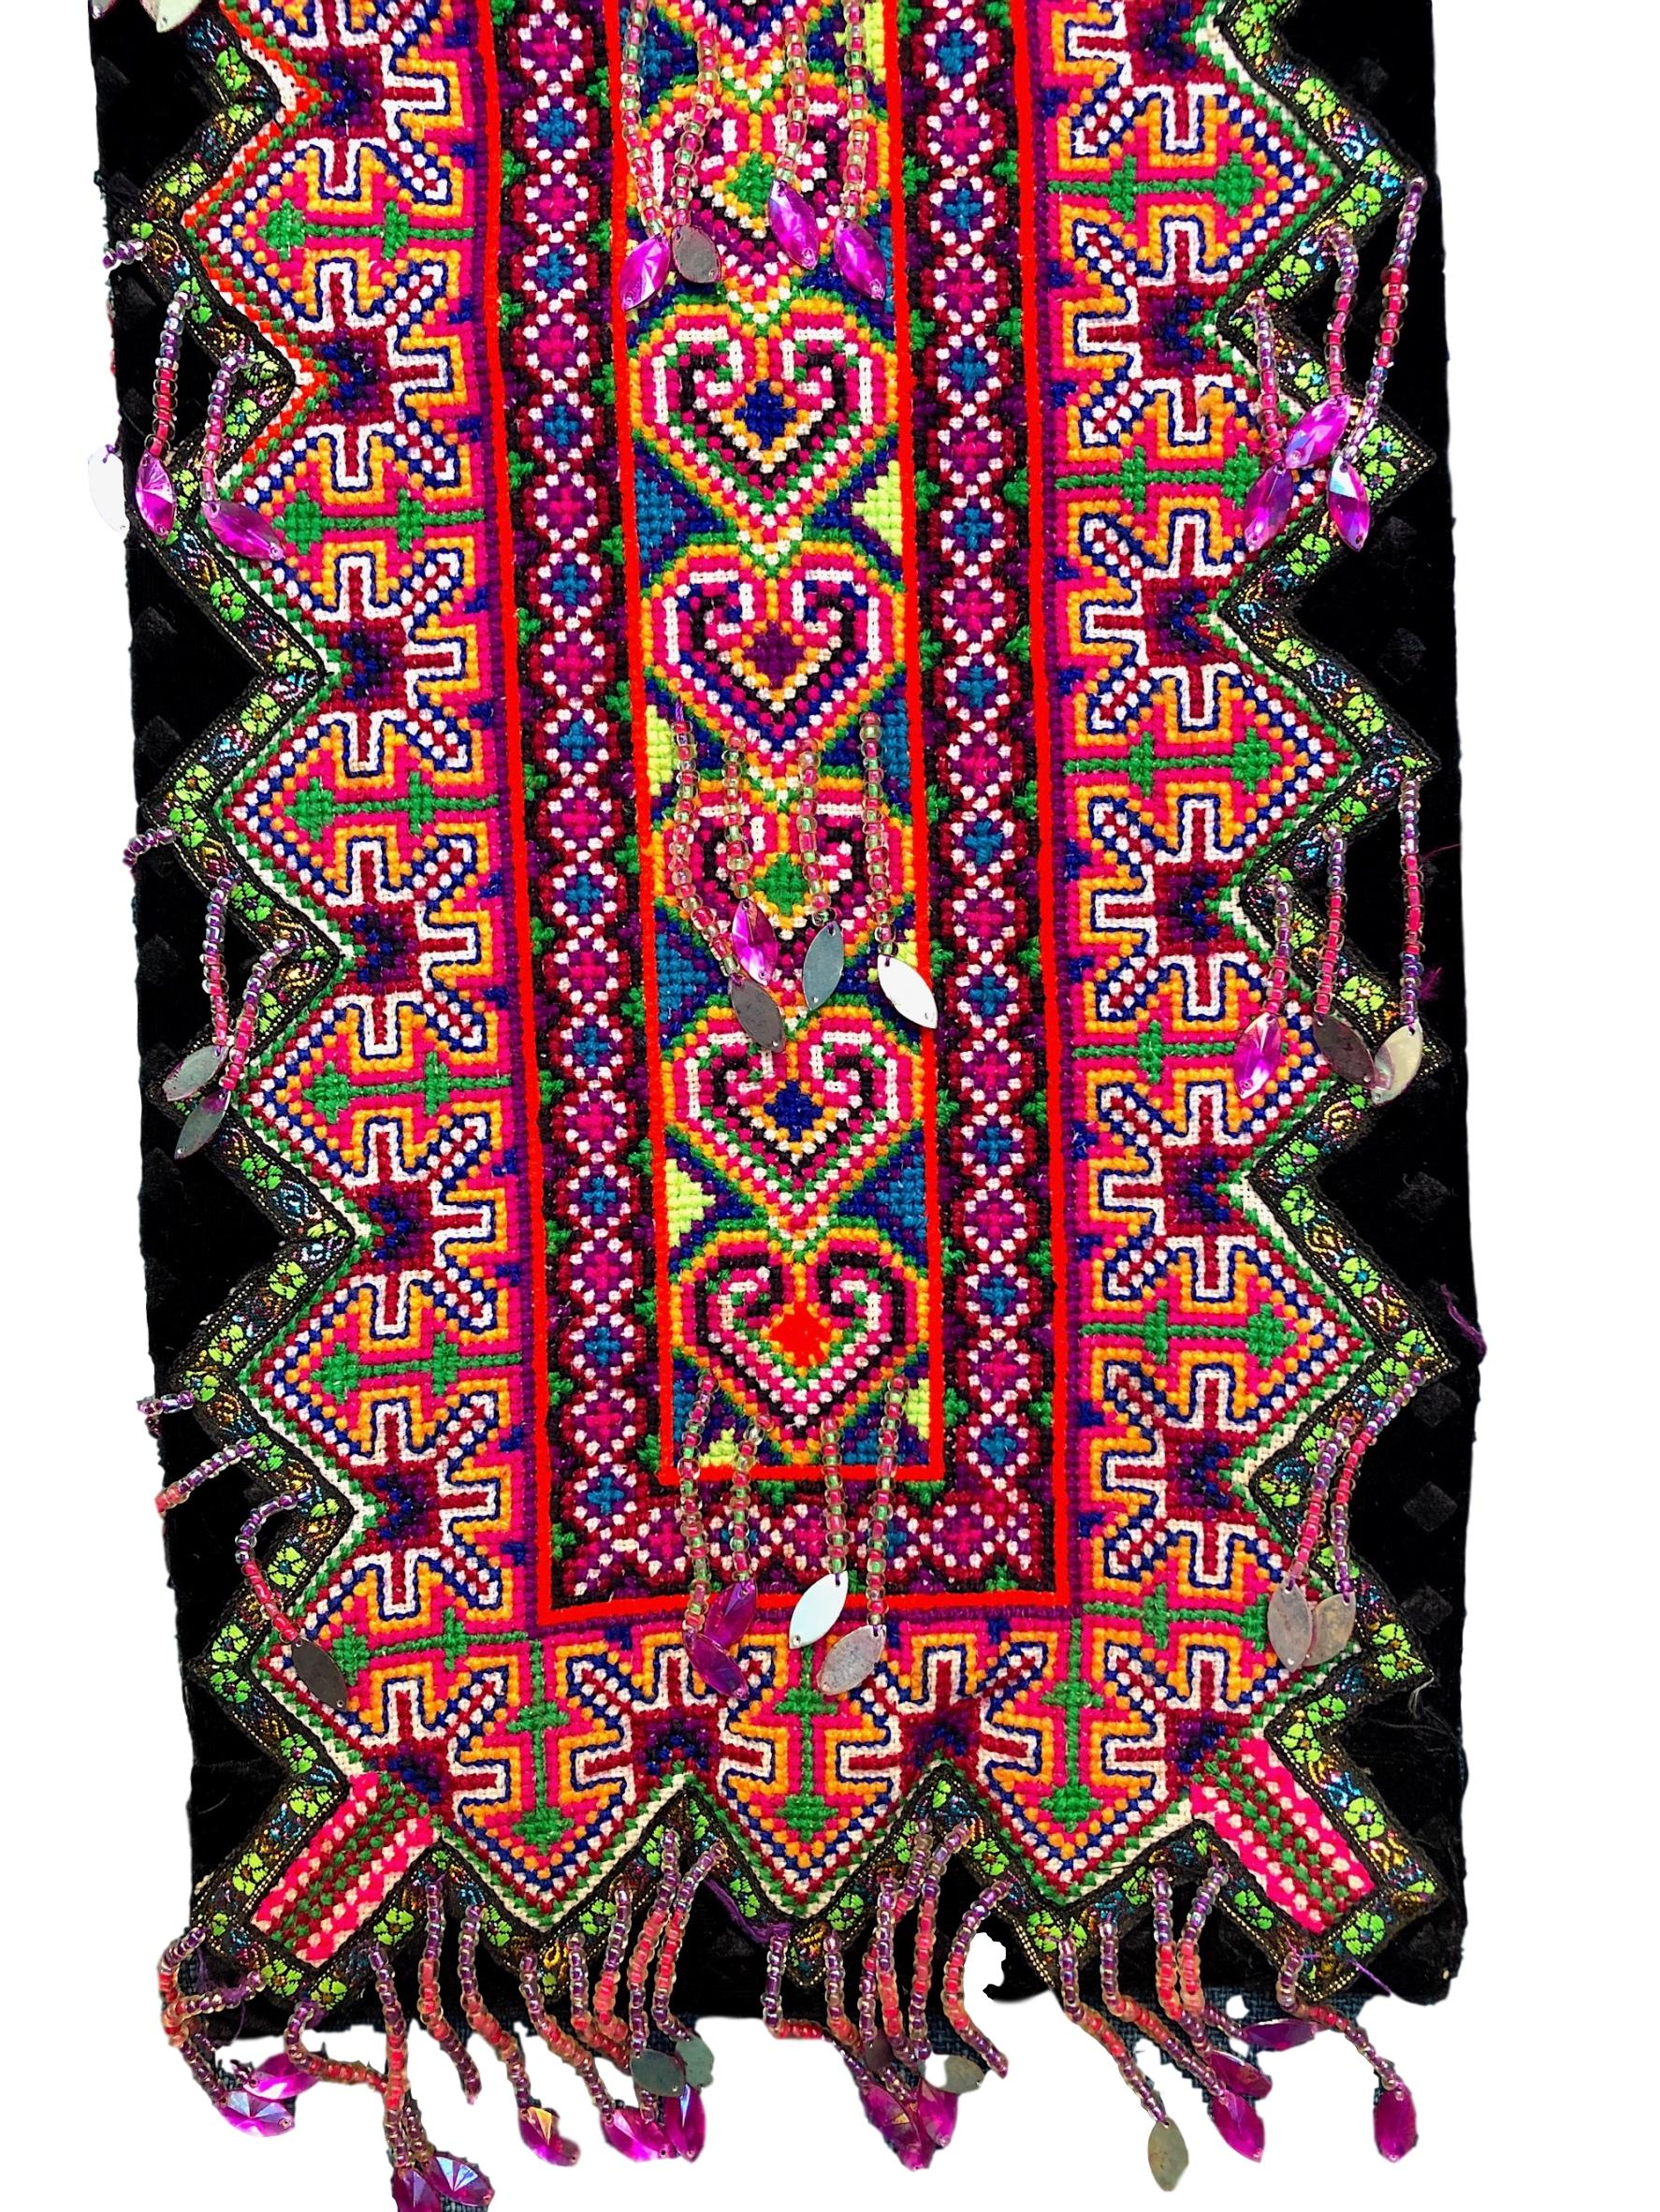 Flower Cloth Hmong fabric - Decor Piece with Beads - Pallu Design